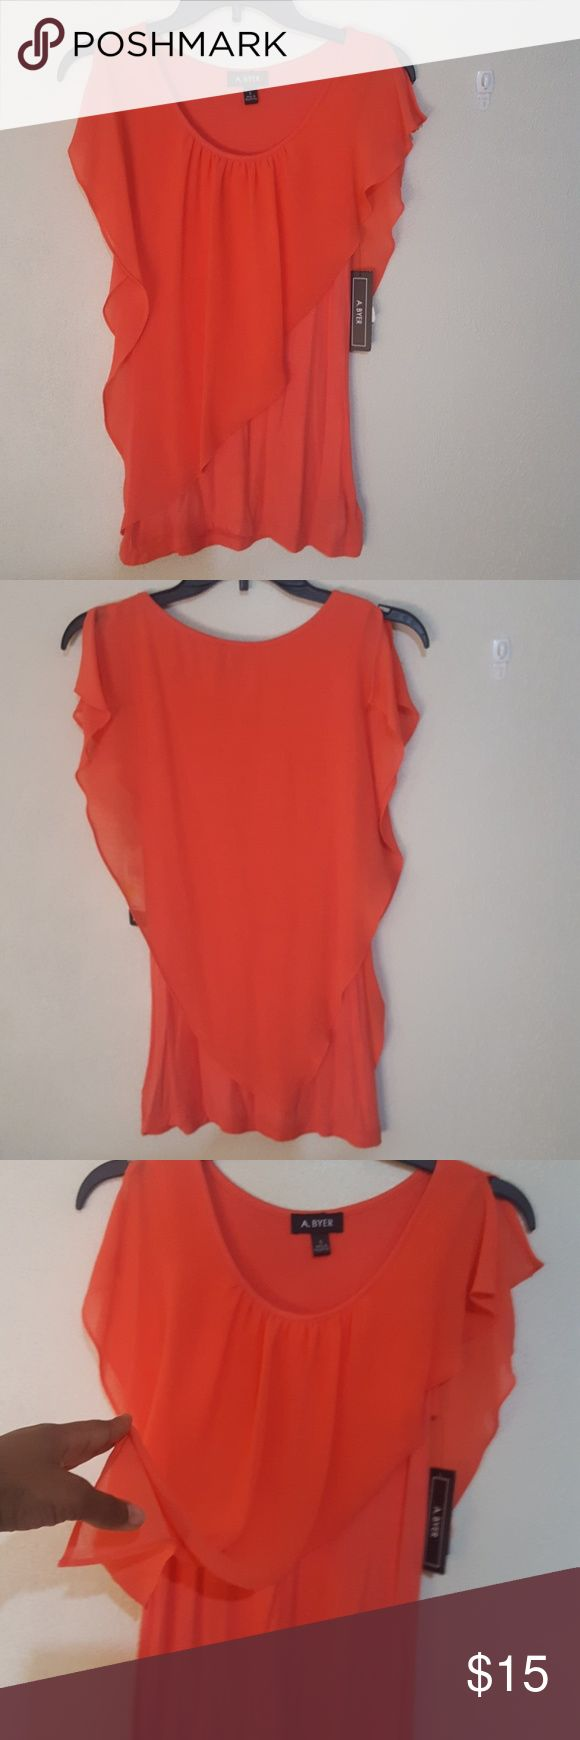 A Byer Cold Shoulder  blouse Salmon, cold shoulder 100% polyester  blouse. Super cute with sheer decorative sheer front.  Would complement any pair of skinny pants or jeans.. NWT A. Byer Tops Blouses